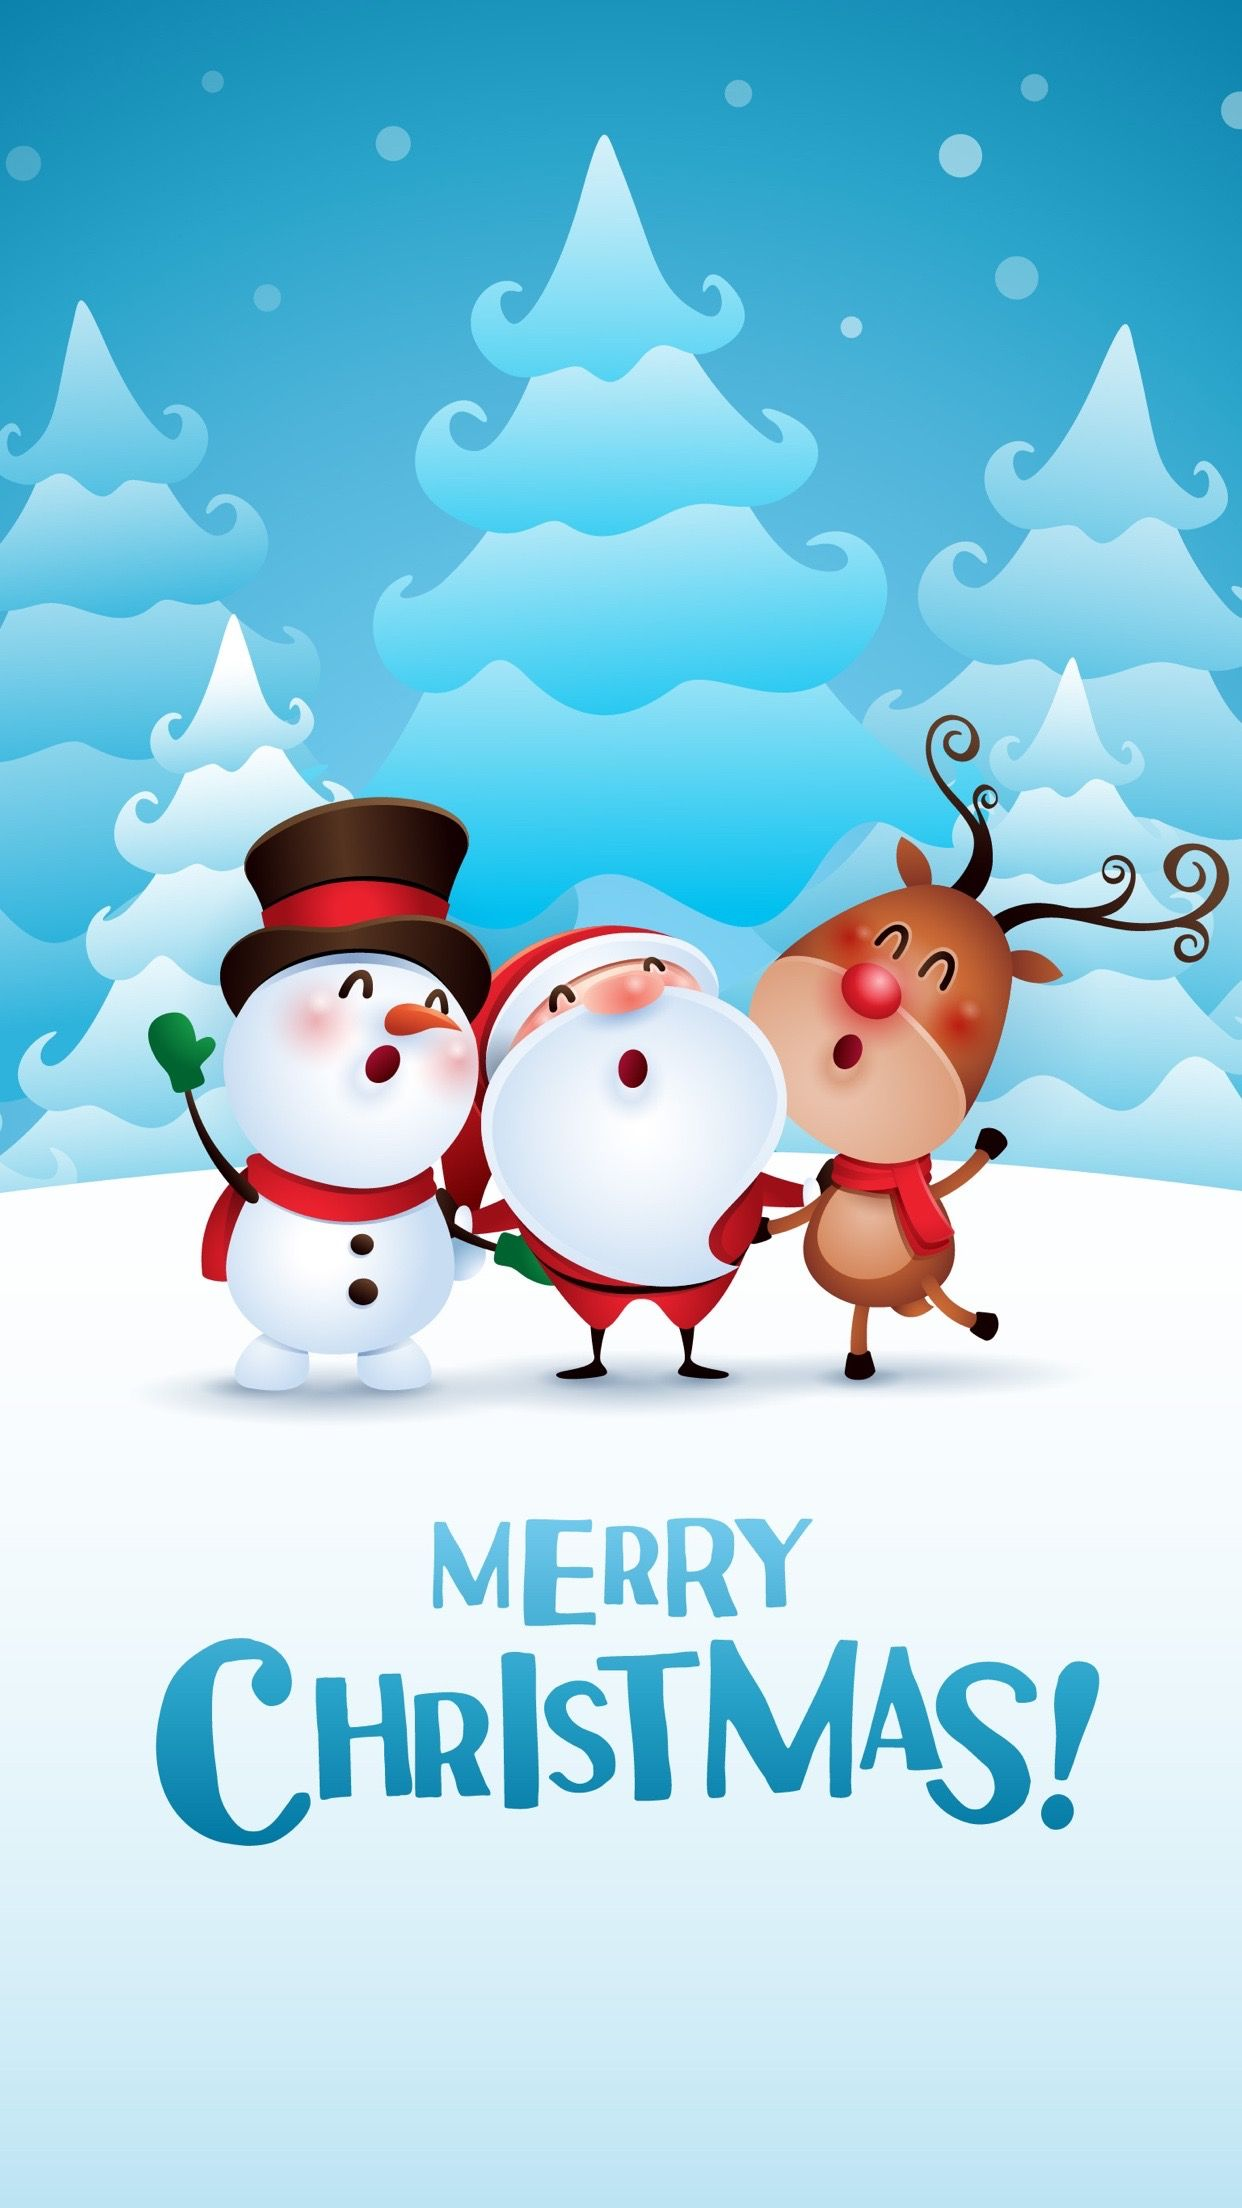 Merry Christmas Wallpapers For iPhone